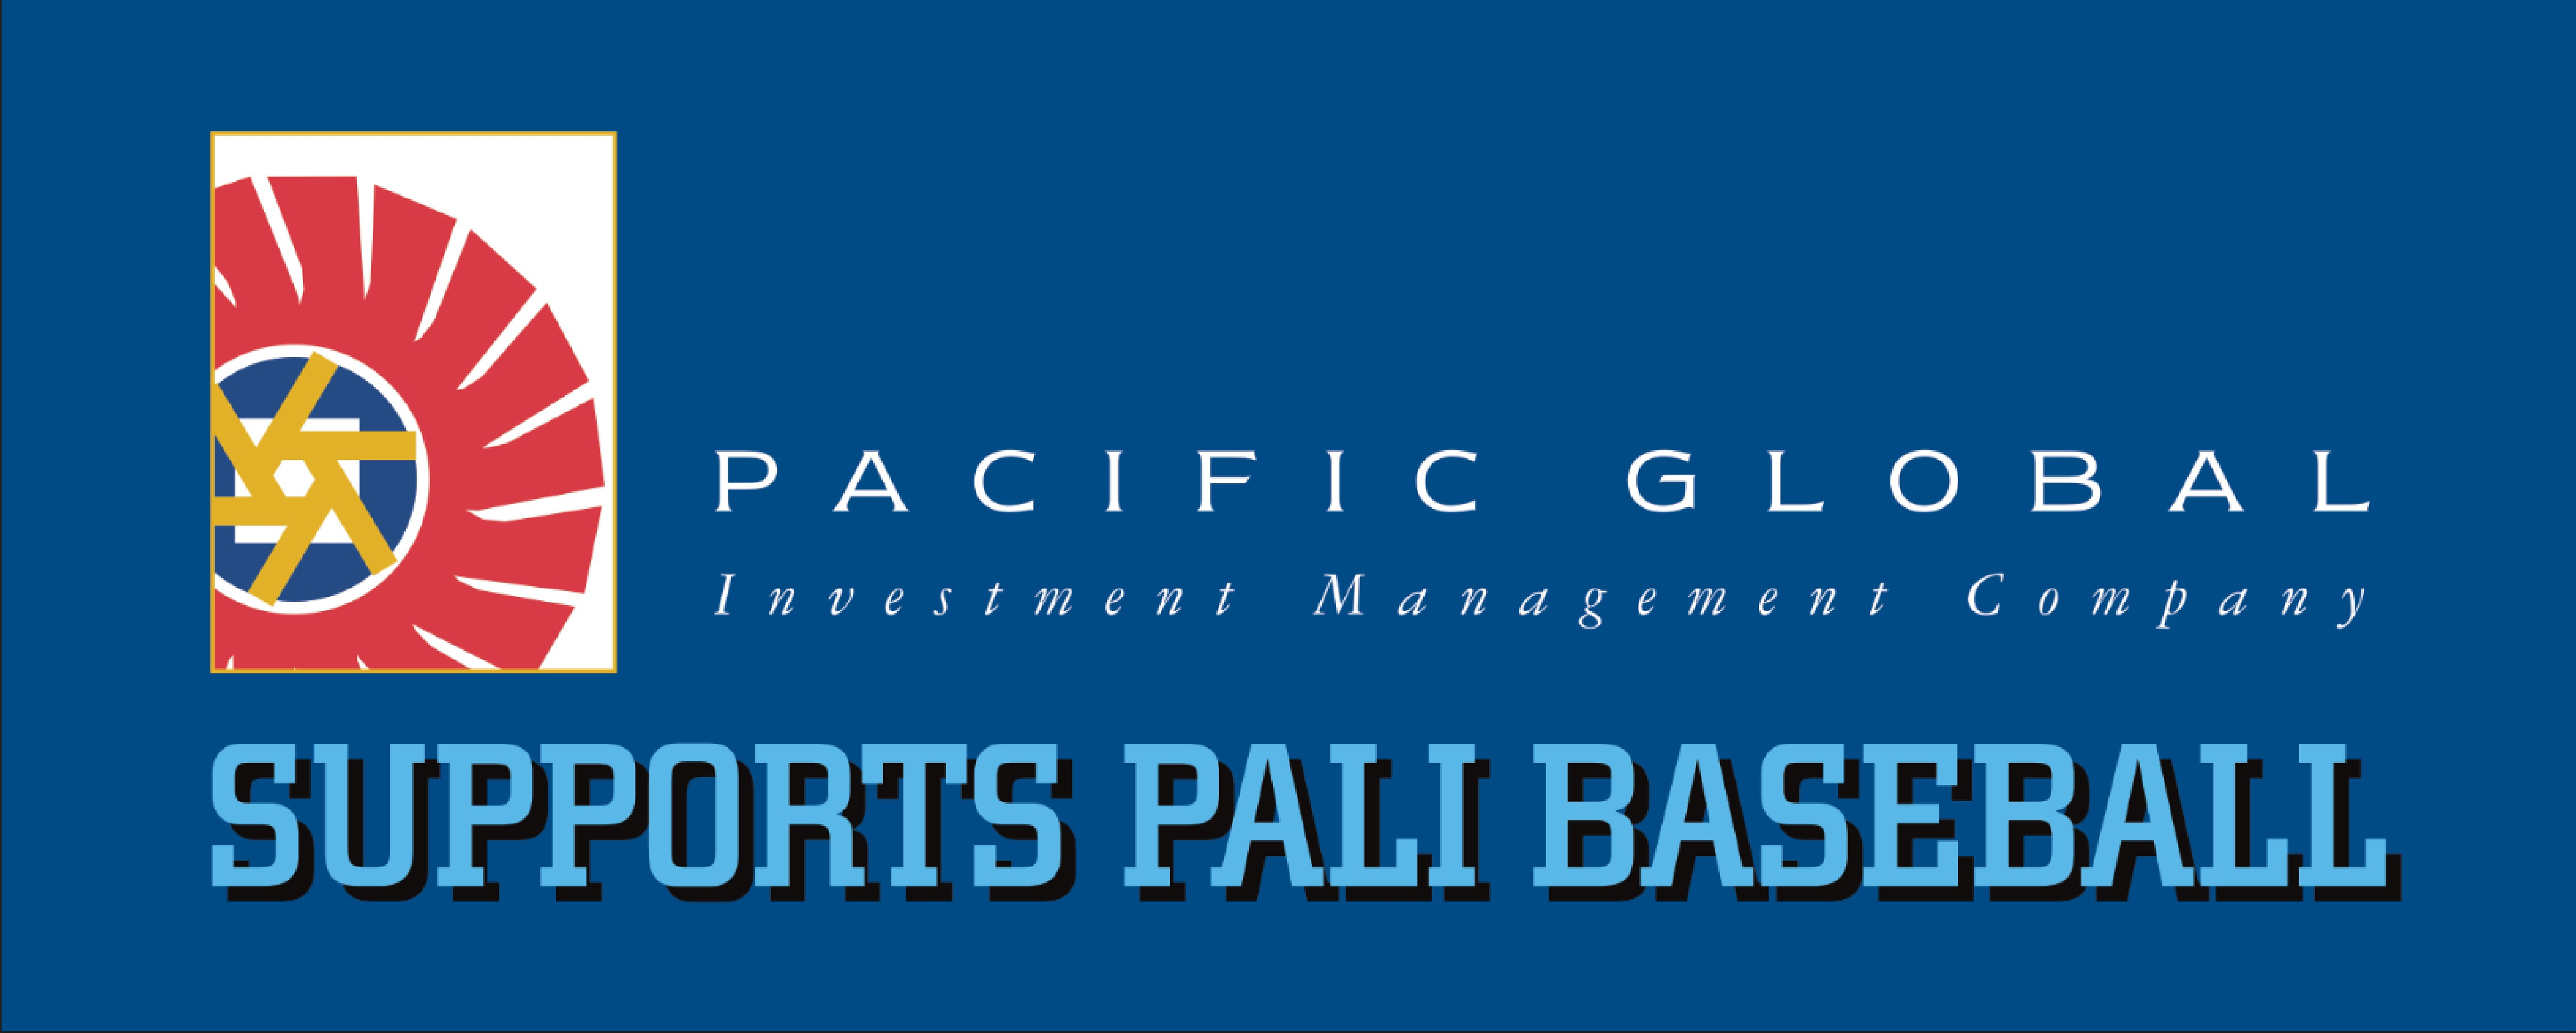 Pacific Global Investment Management Corporation